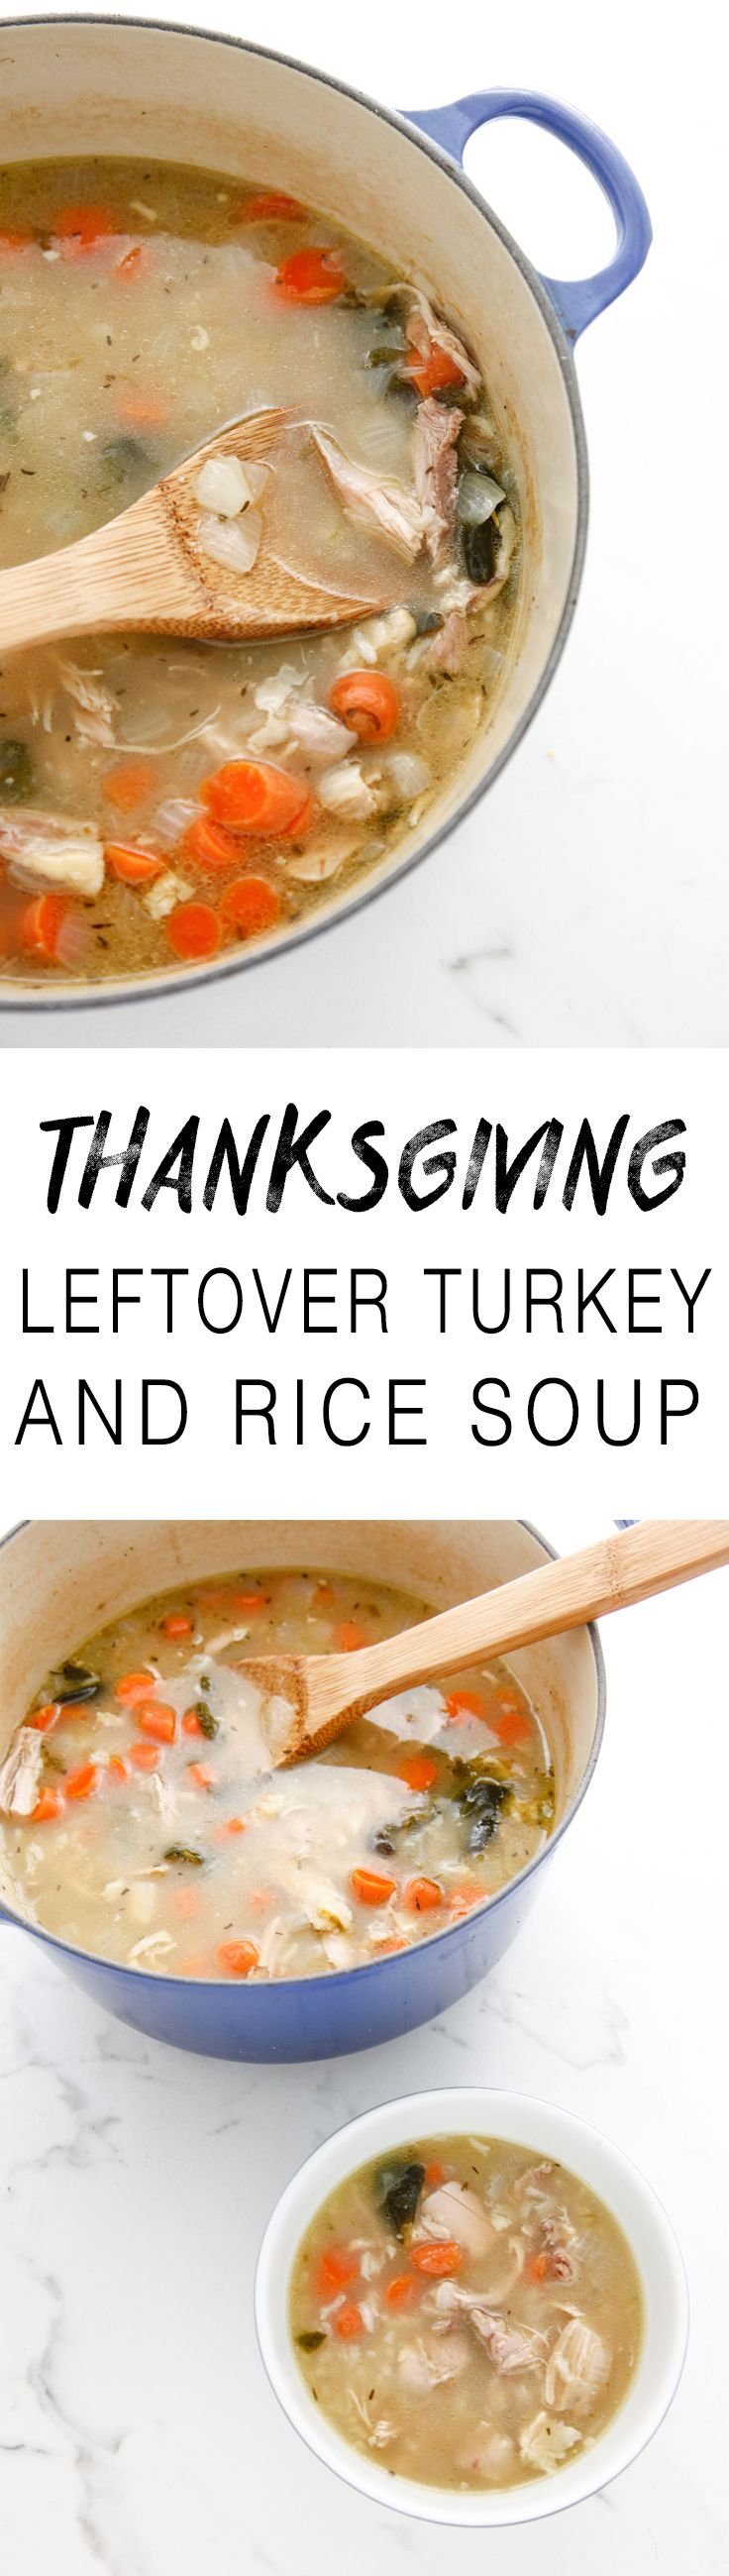 Leftover Turkey and Rice Soup via @thebrooklyncook